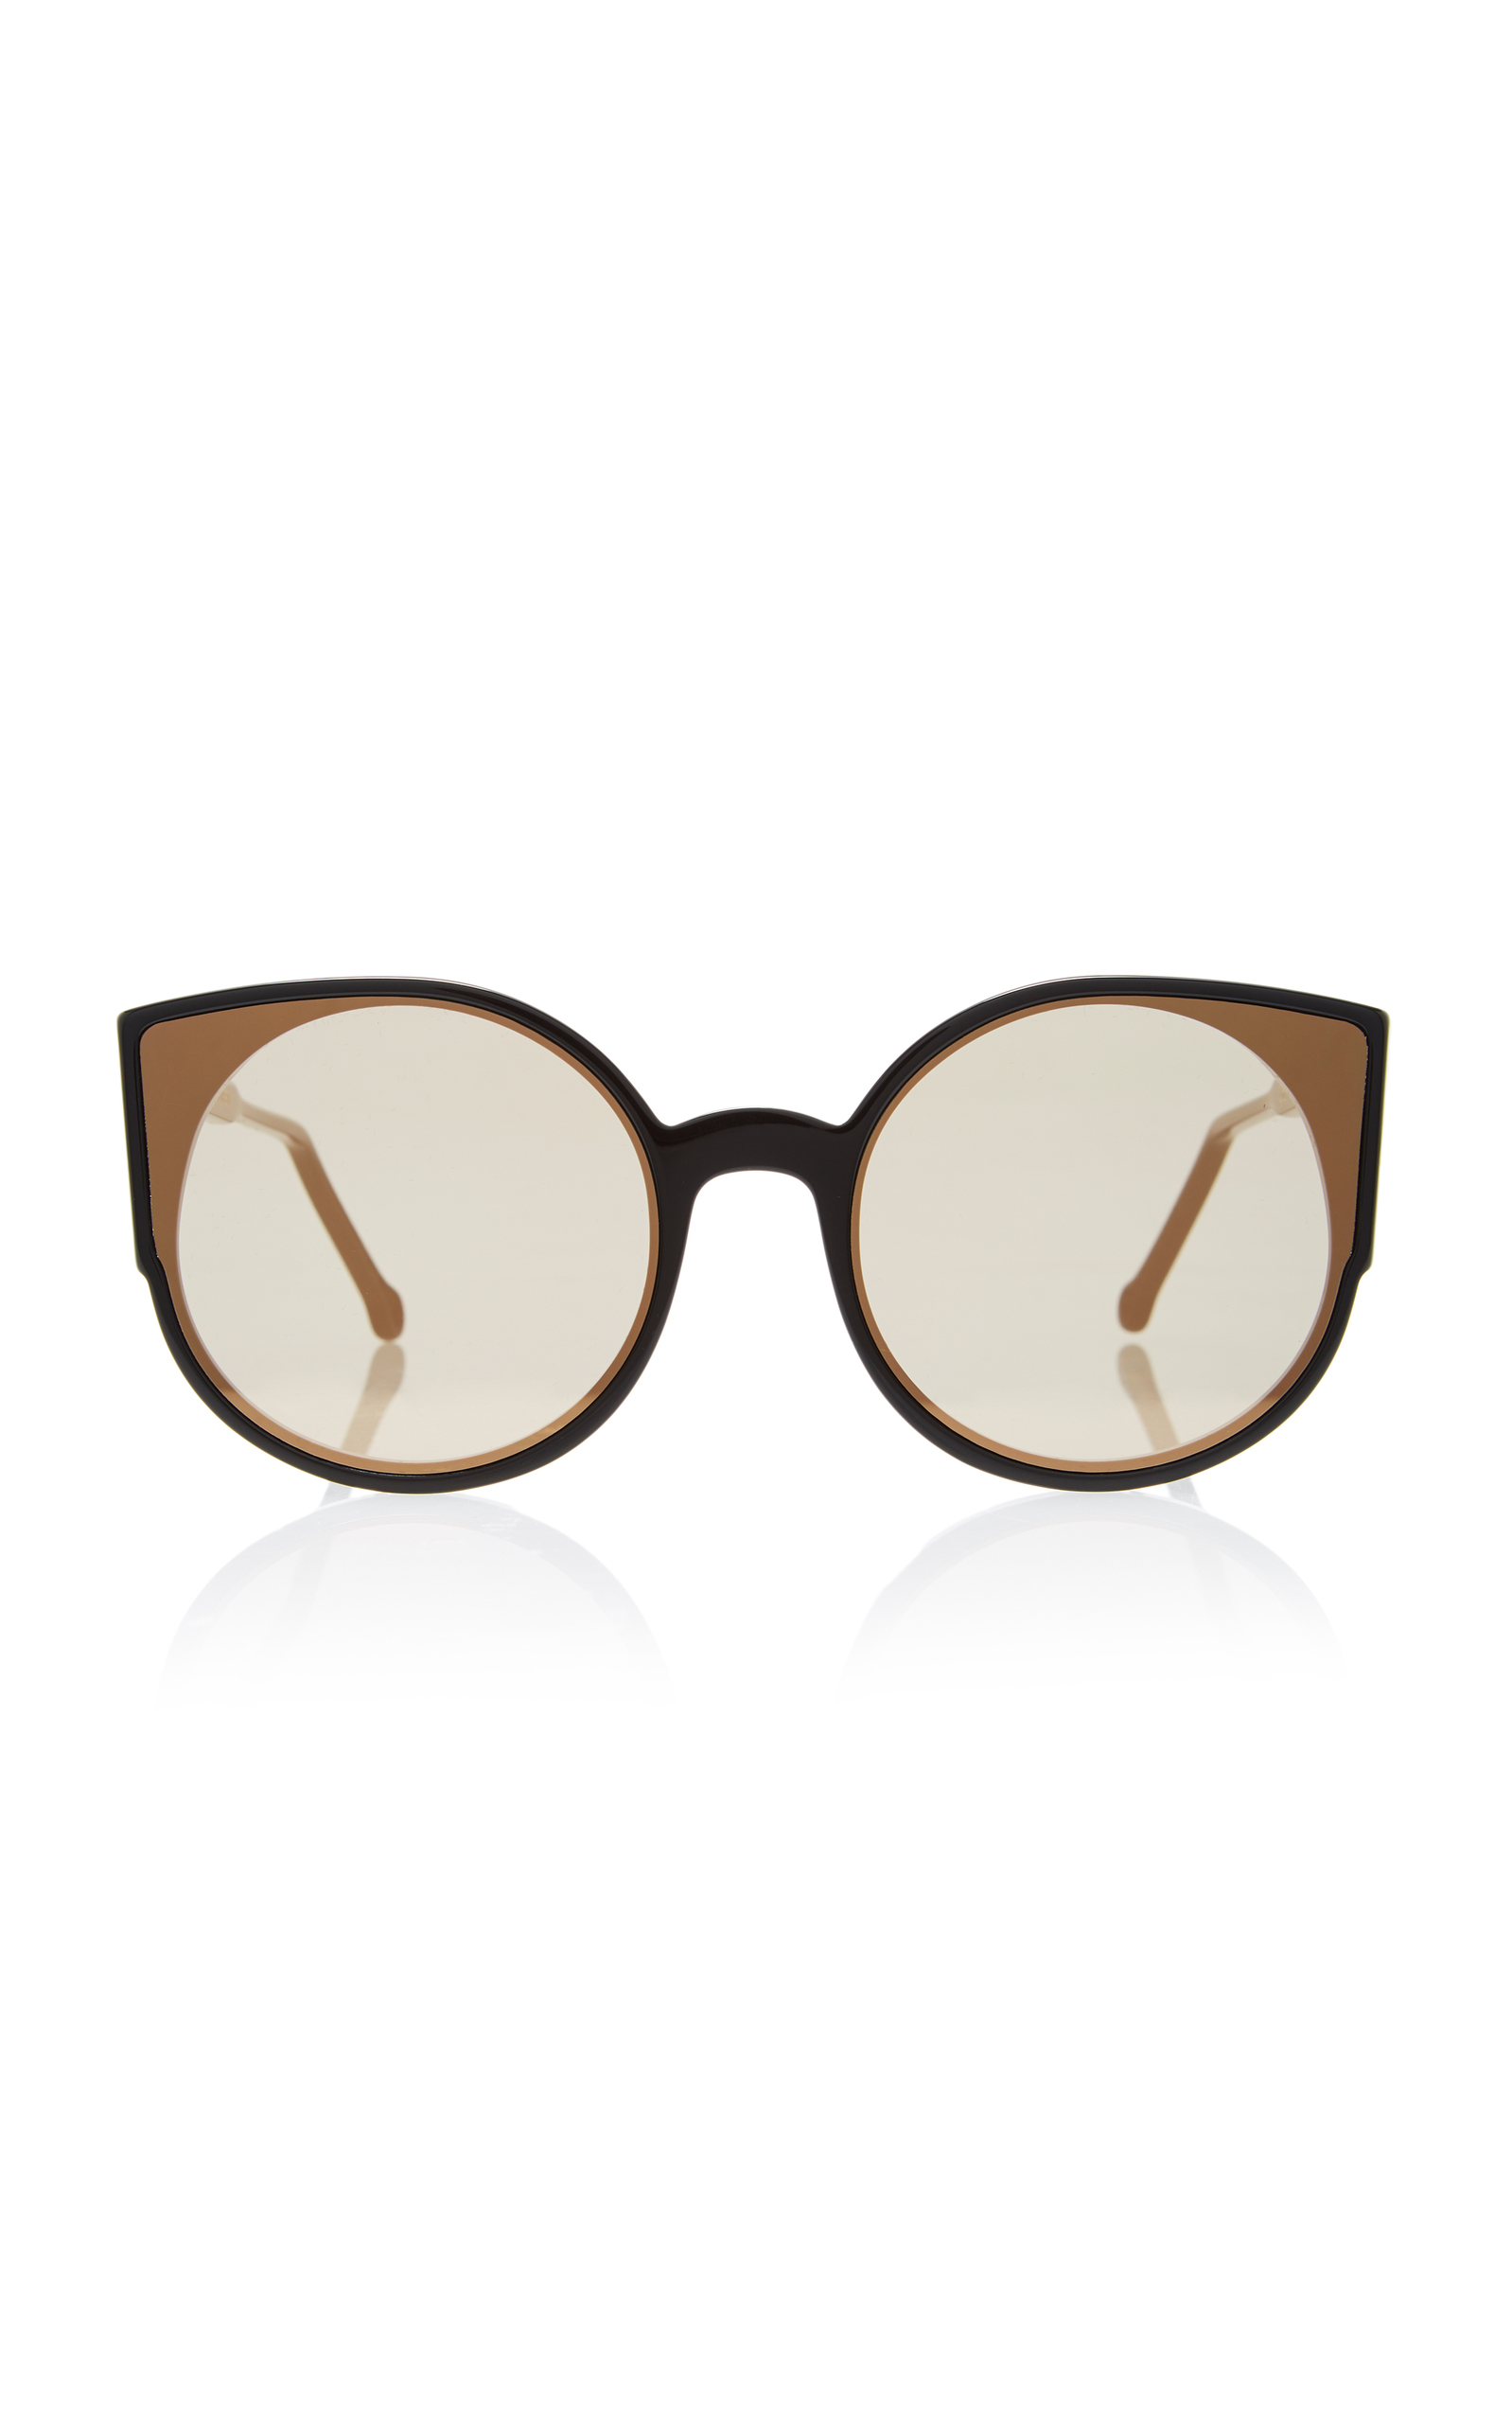 Cheap Sale Affordable Retrosuperfuture cat eye glasses Buy Cheap Online Outlet Visit New Sale Fashionable Popular Sale Online e9qMYN